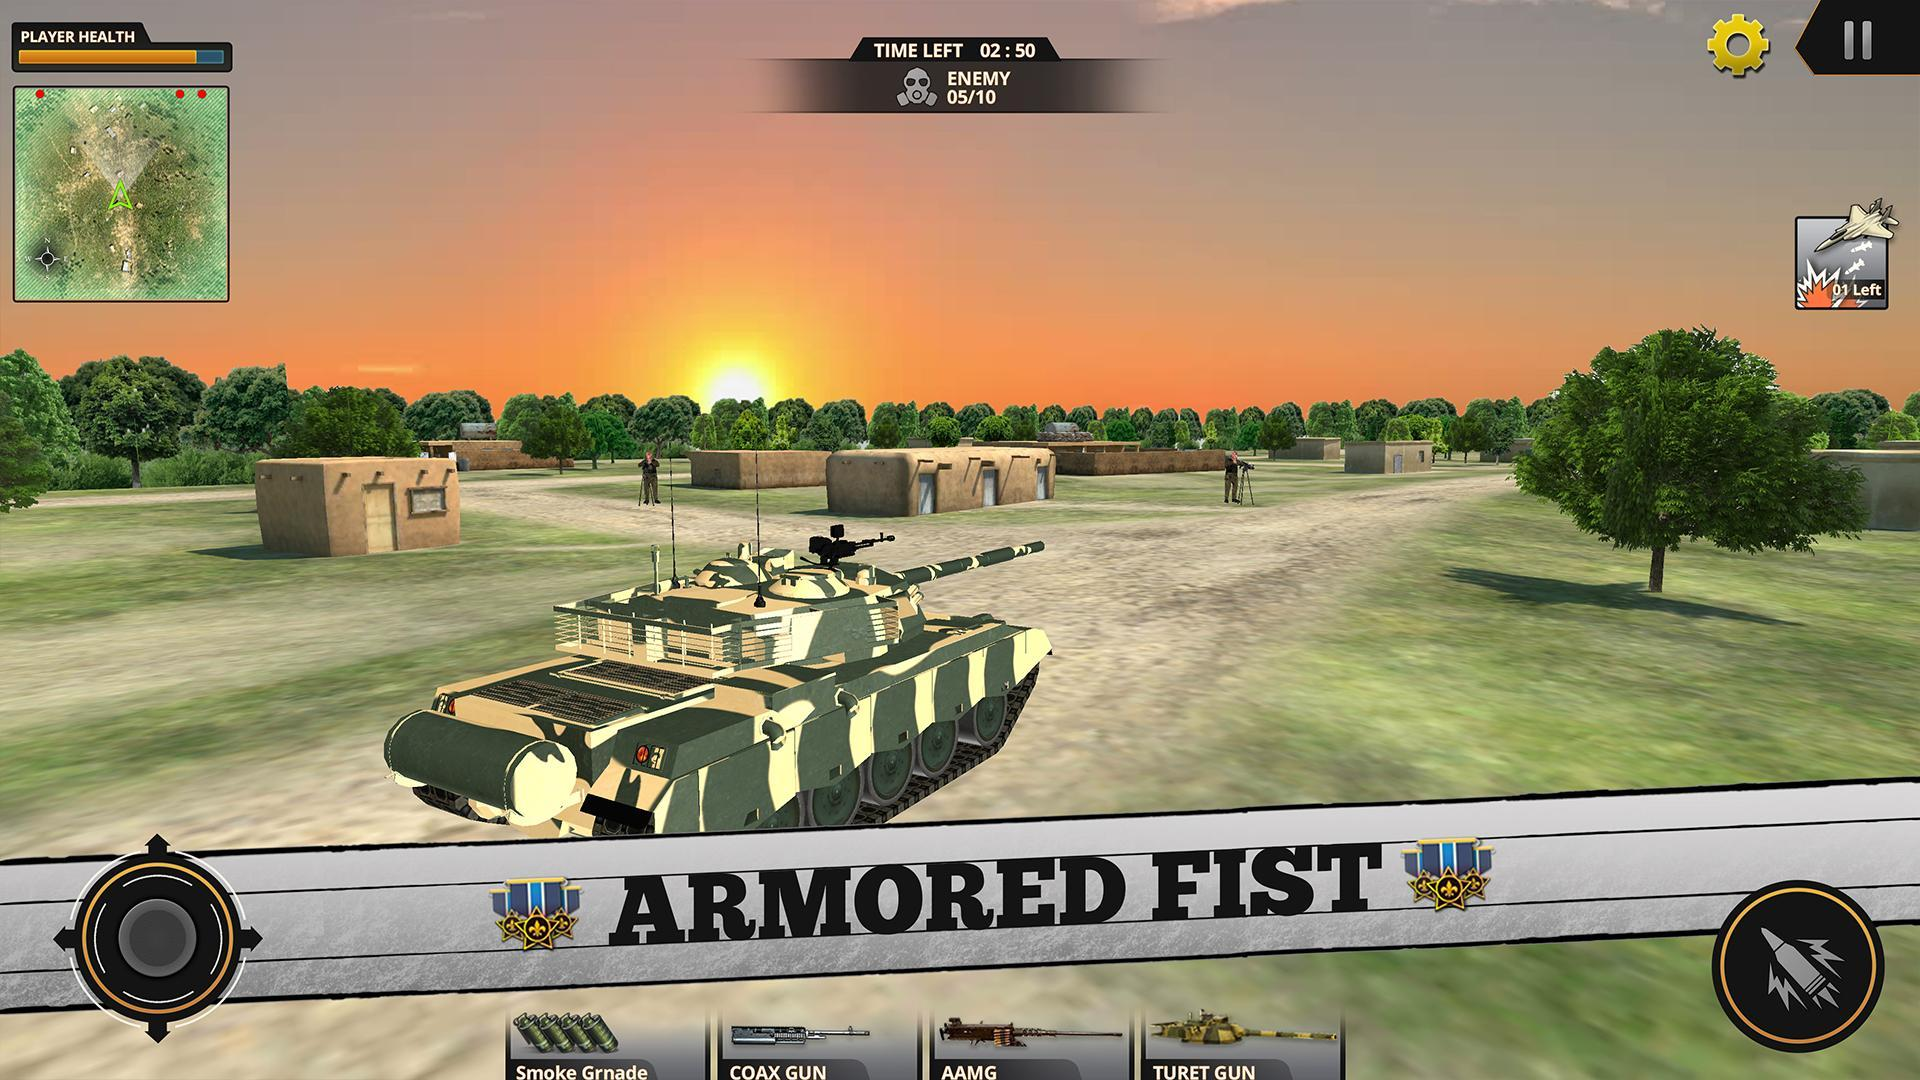 The Glorious Resolve: Journey To Peace - Army Game for